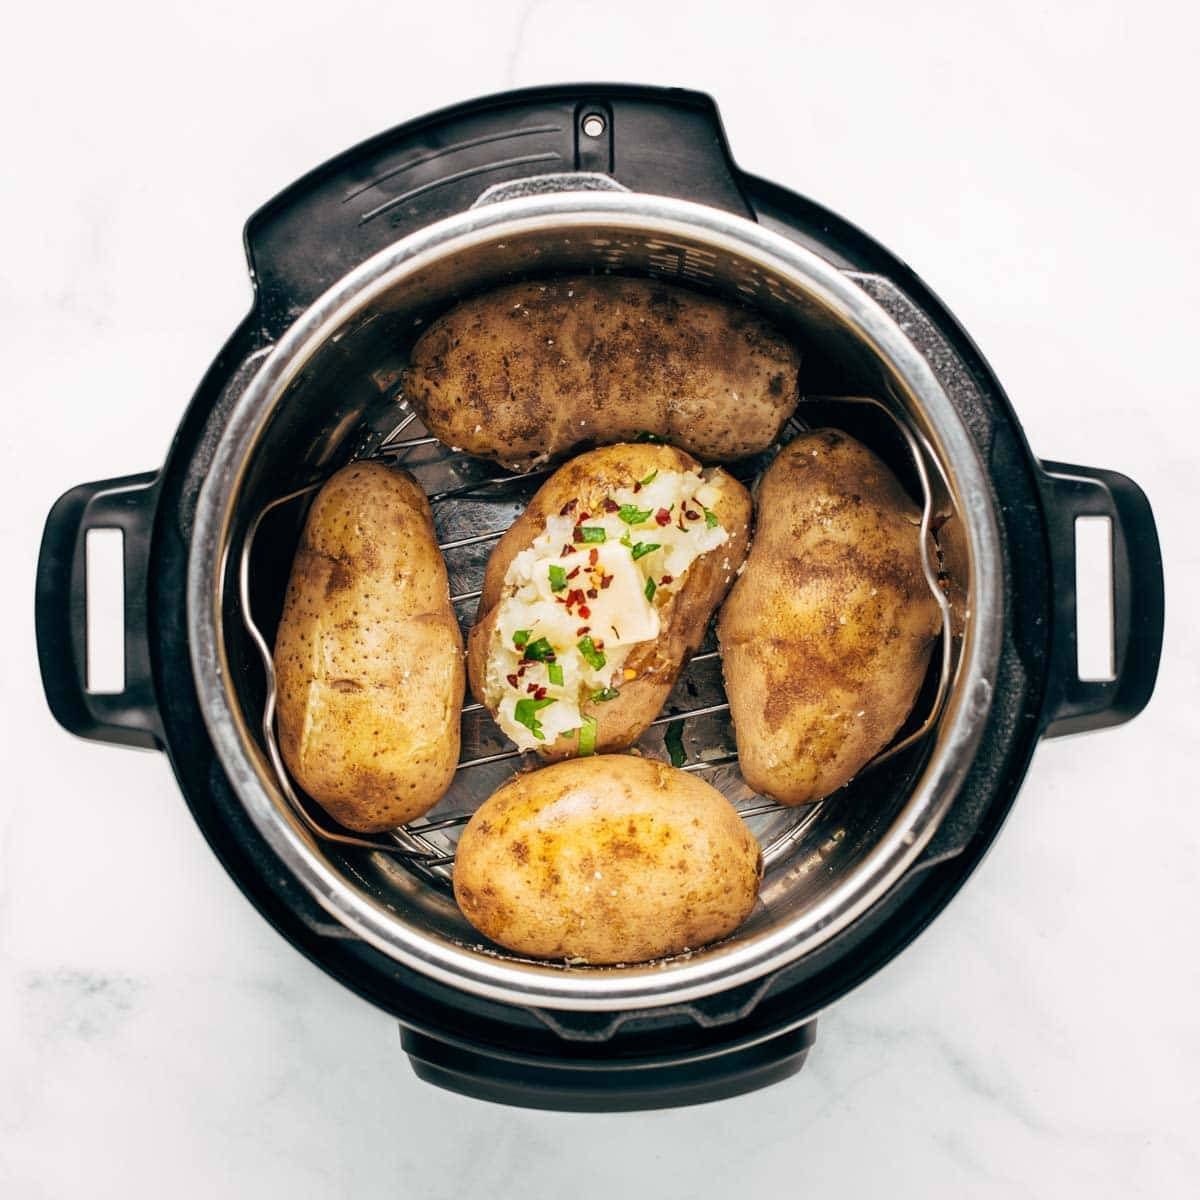 Potatoes in the Instant Pot.